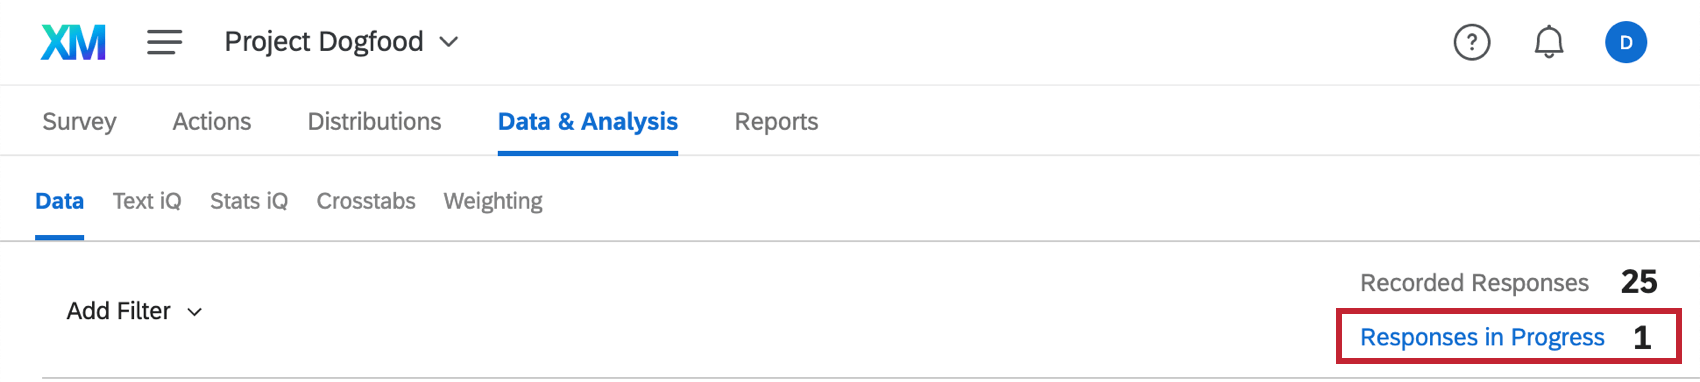 Responses in progress is right under recorded responses option in upper-right